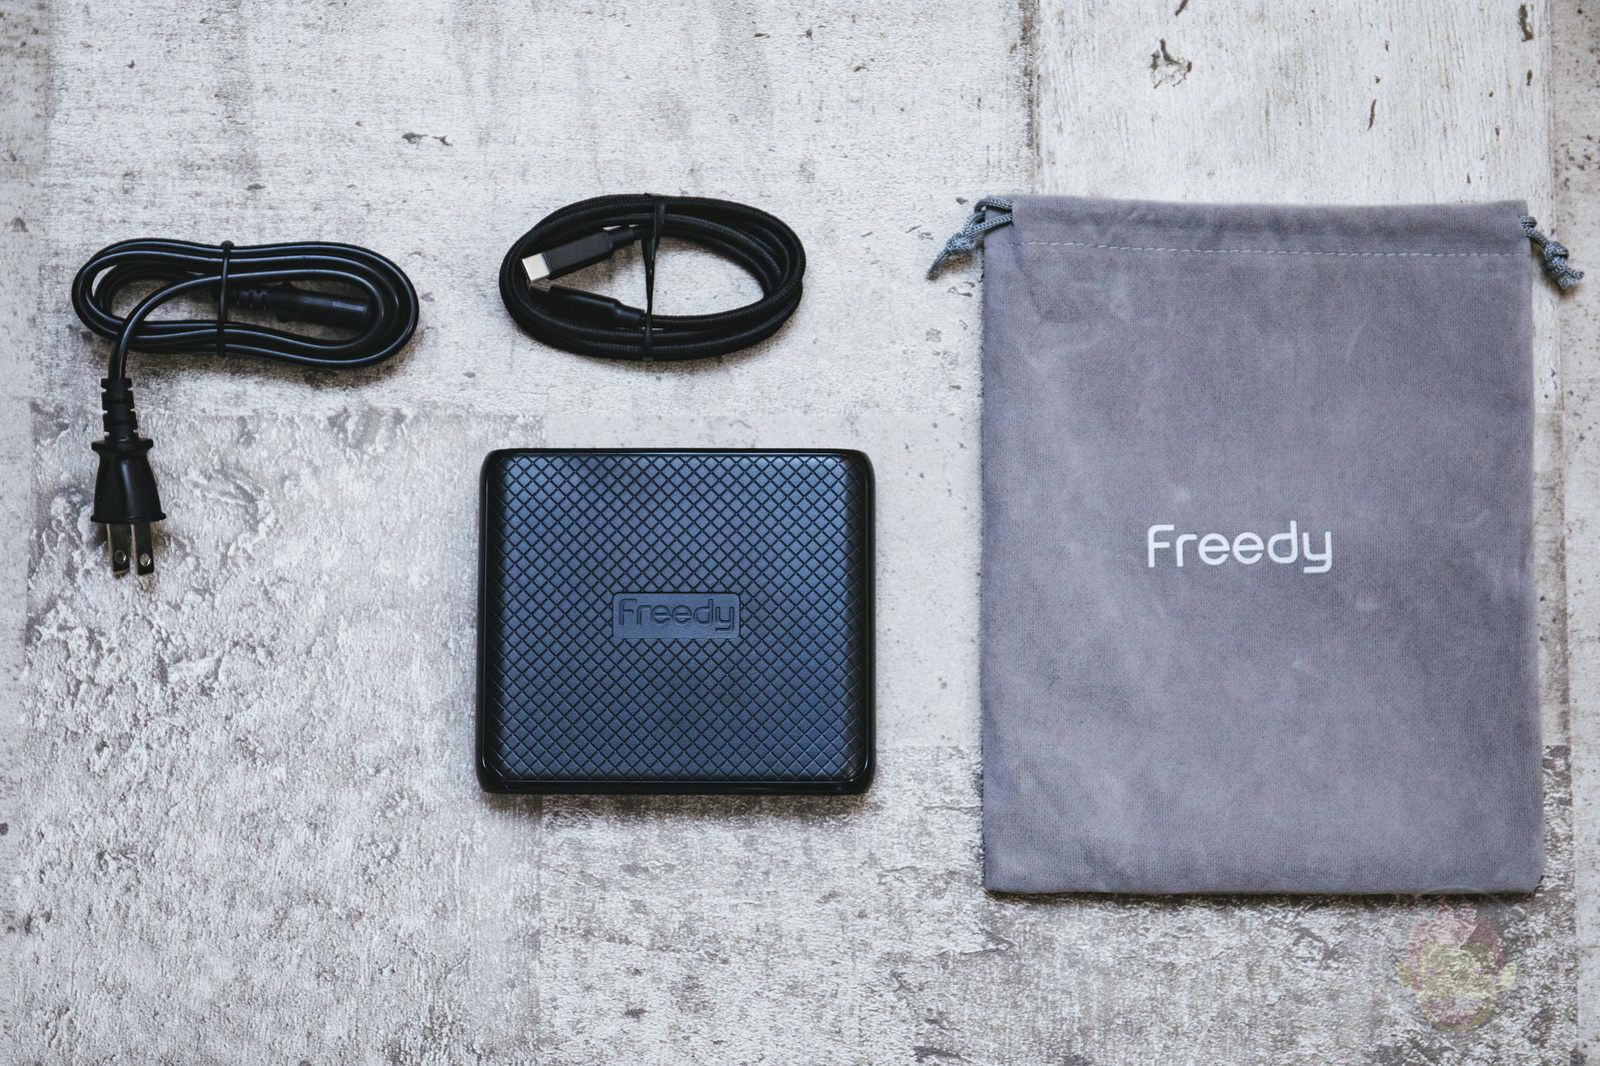 Freedy 90W Multiport Charger Review 12